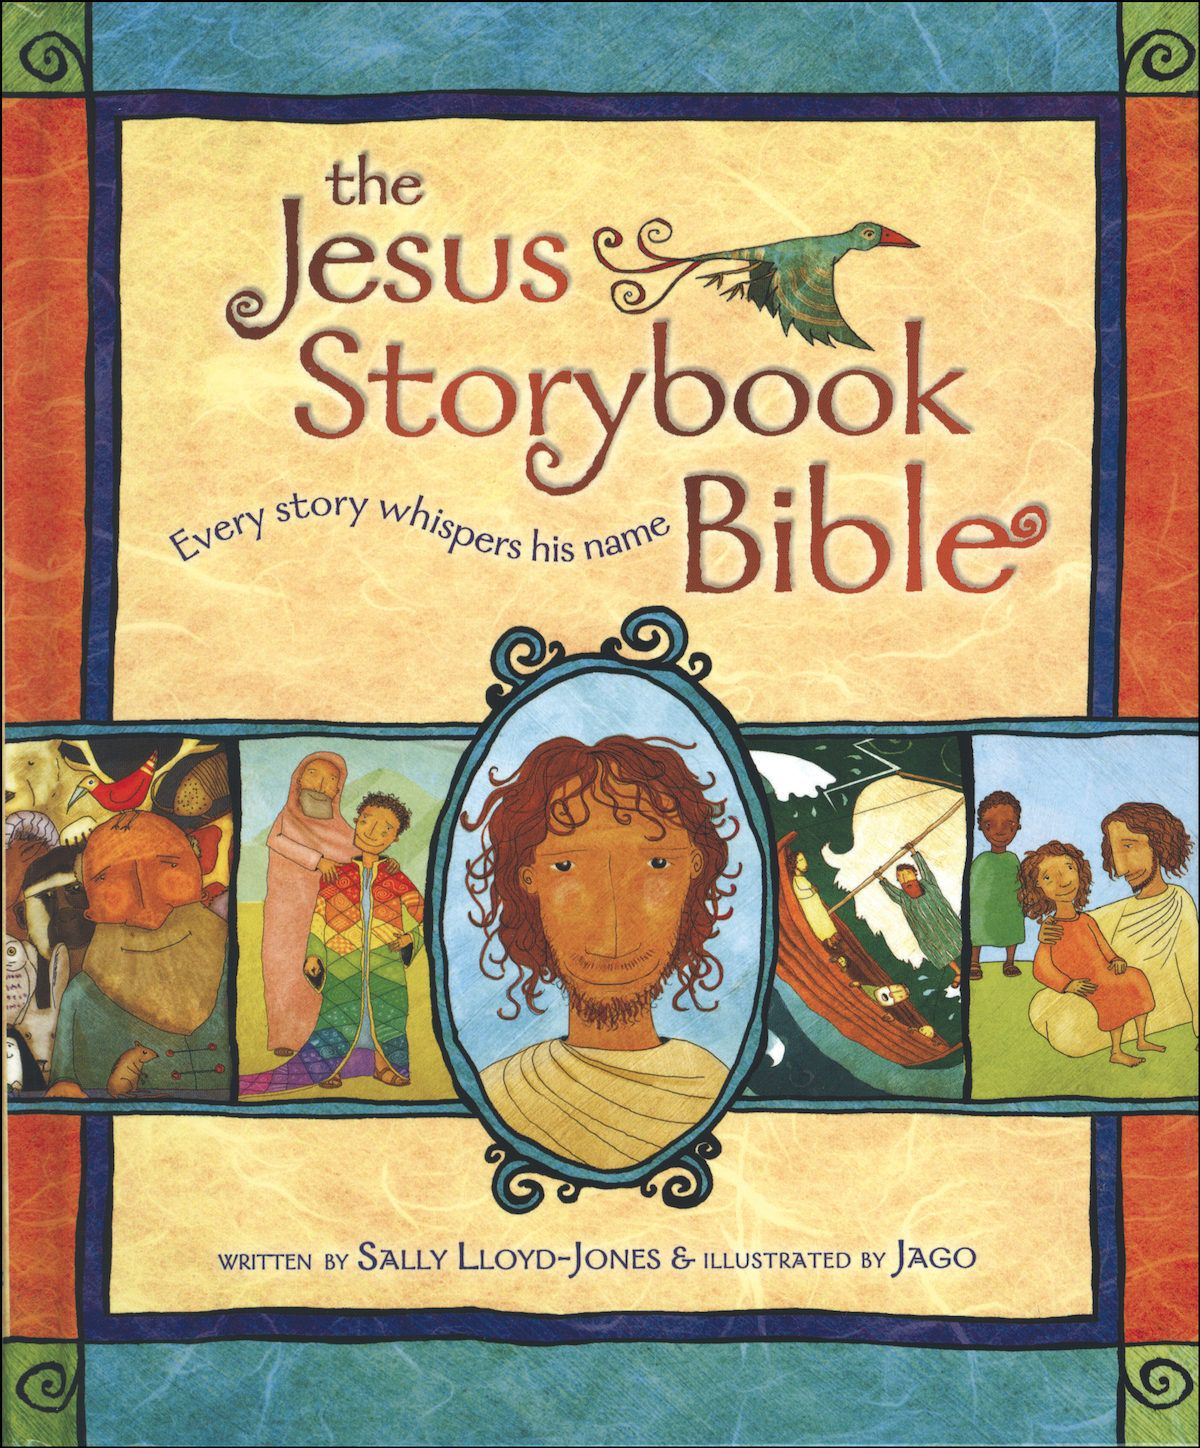 The Jesus Storybook Bible In 2020 Sally Lloyd Jones Bible For Kids Childrens Bible